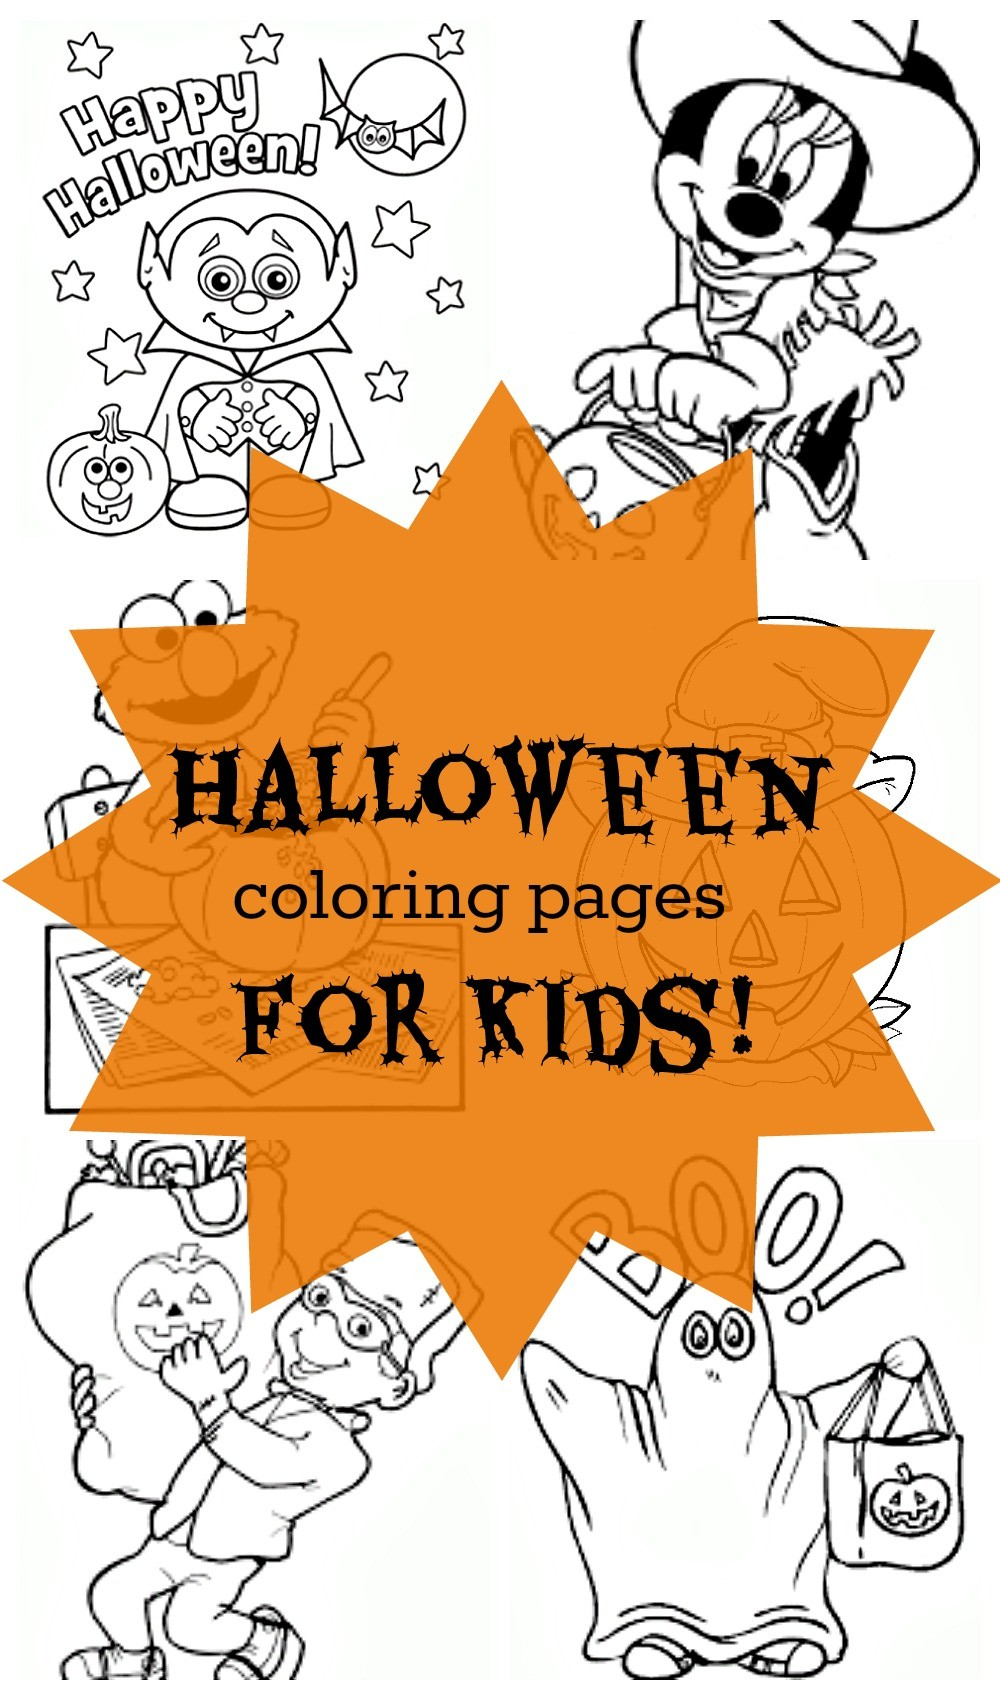 Free Halloween coloring pages for kids. Part of Free Halloween Printables Round-up: Over 100 Free Printables.